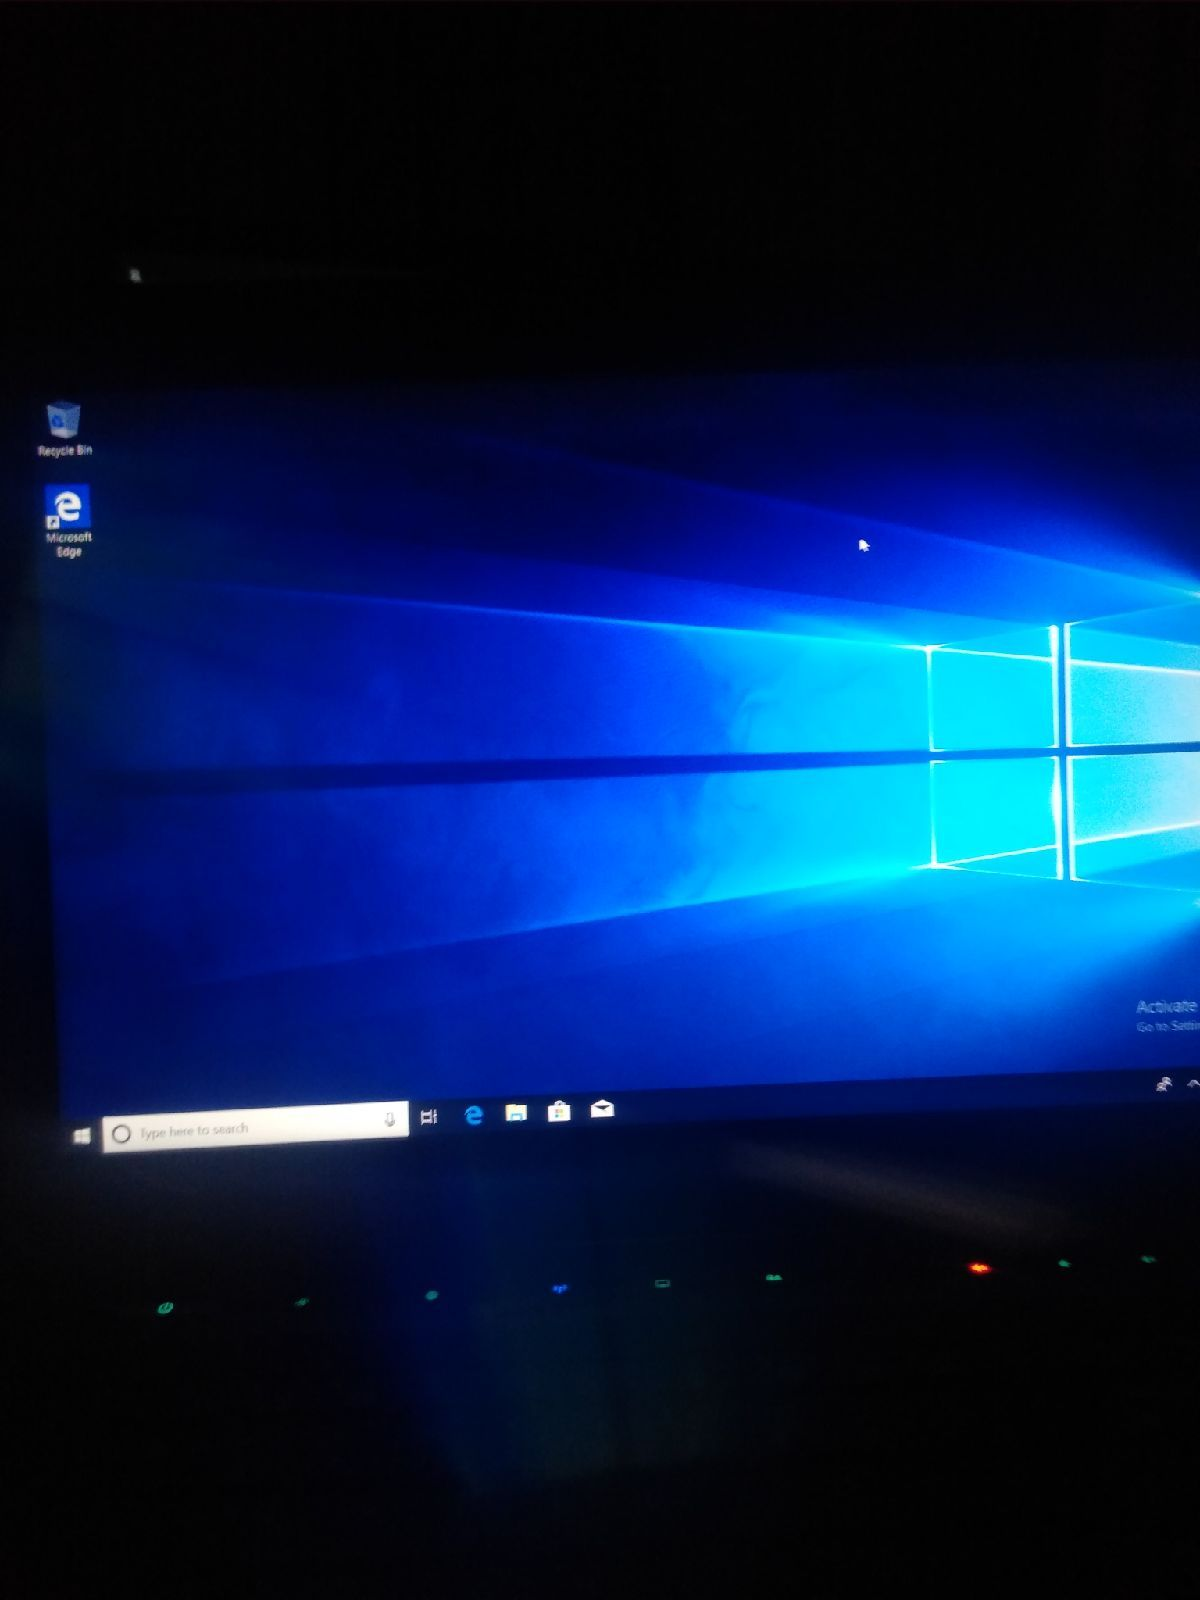 This laptop is good from the inside, it has windows 10 and